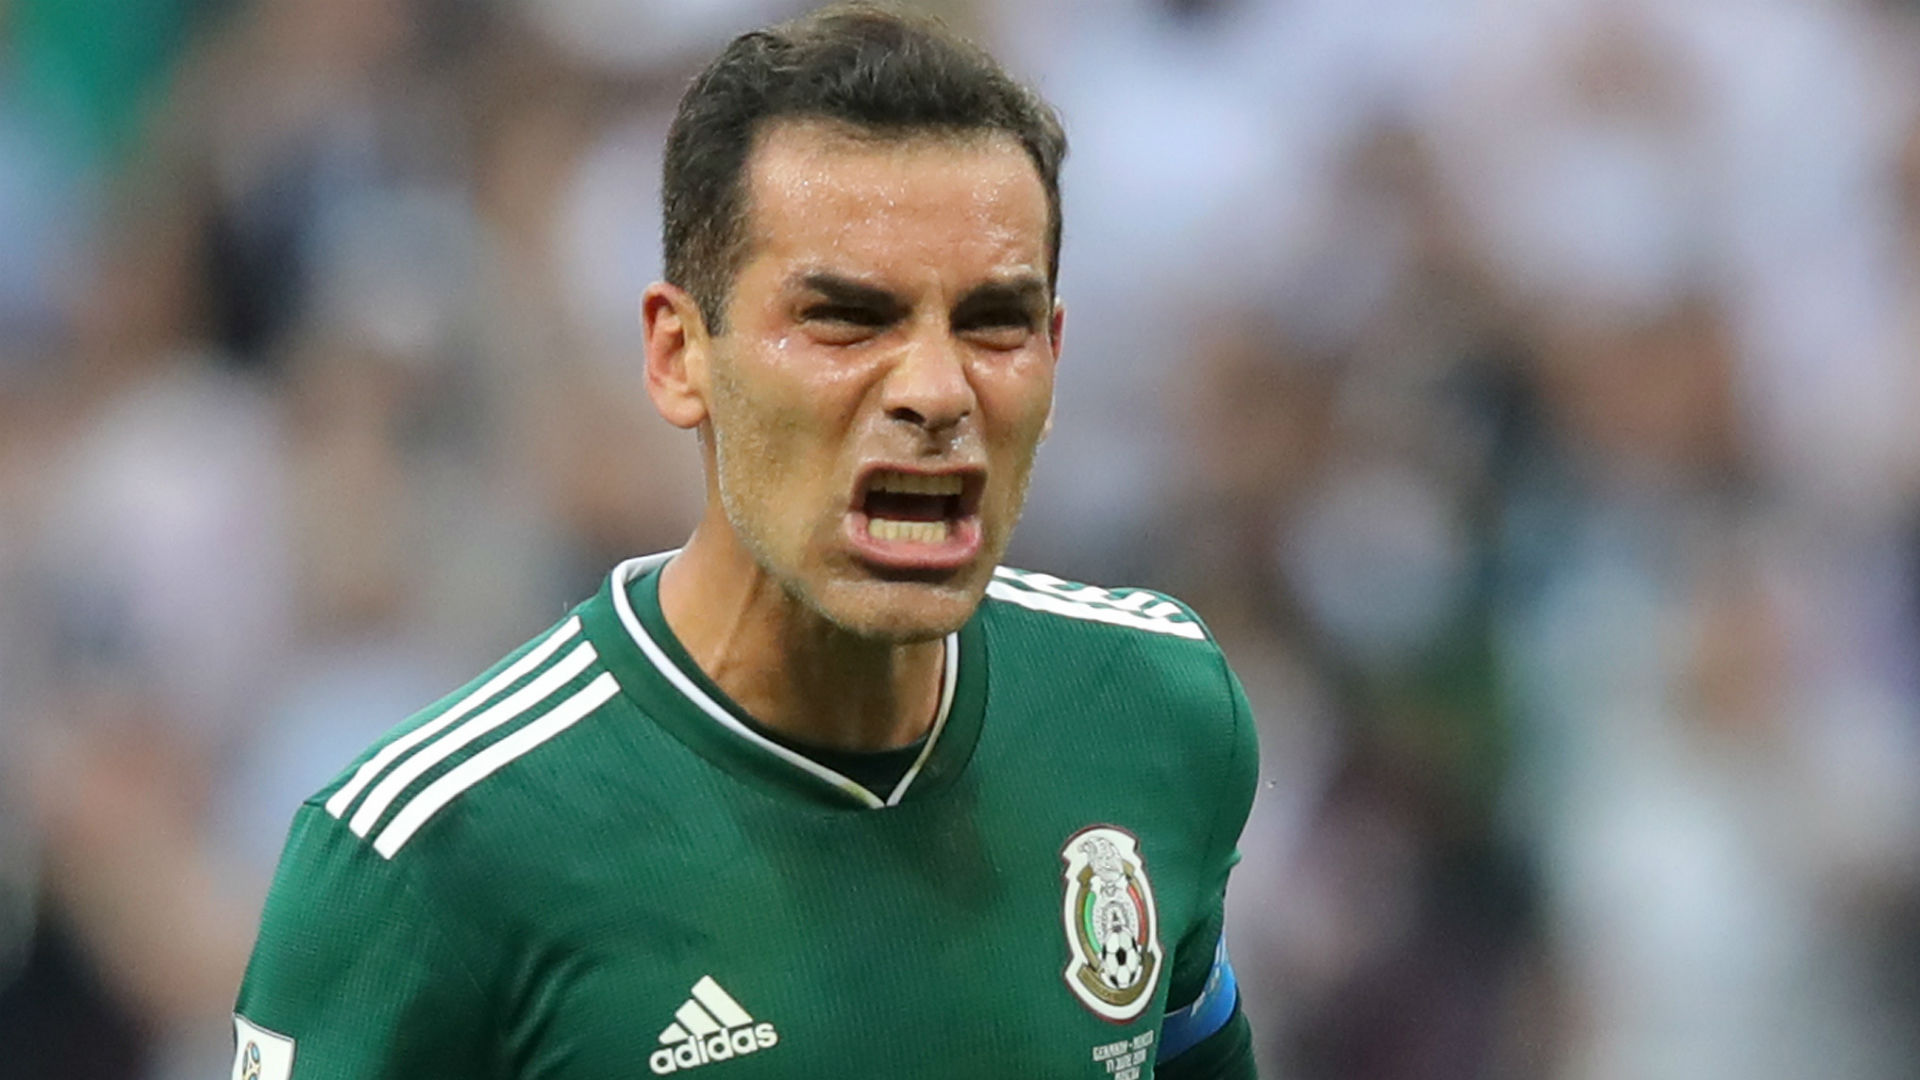 'It won't be long until they overtake us' - Mexico legend Marquez says Liga MX should be 'worried' about improved MLS